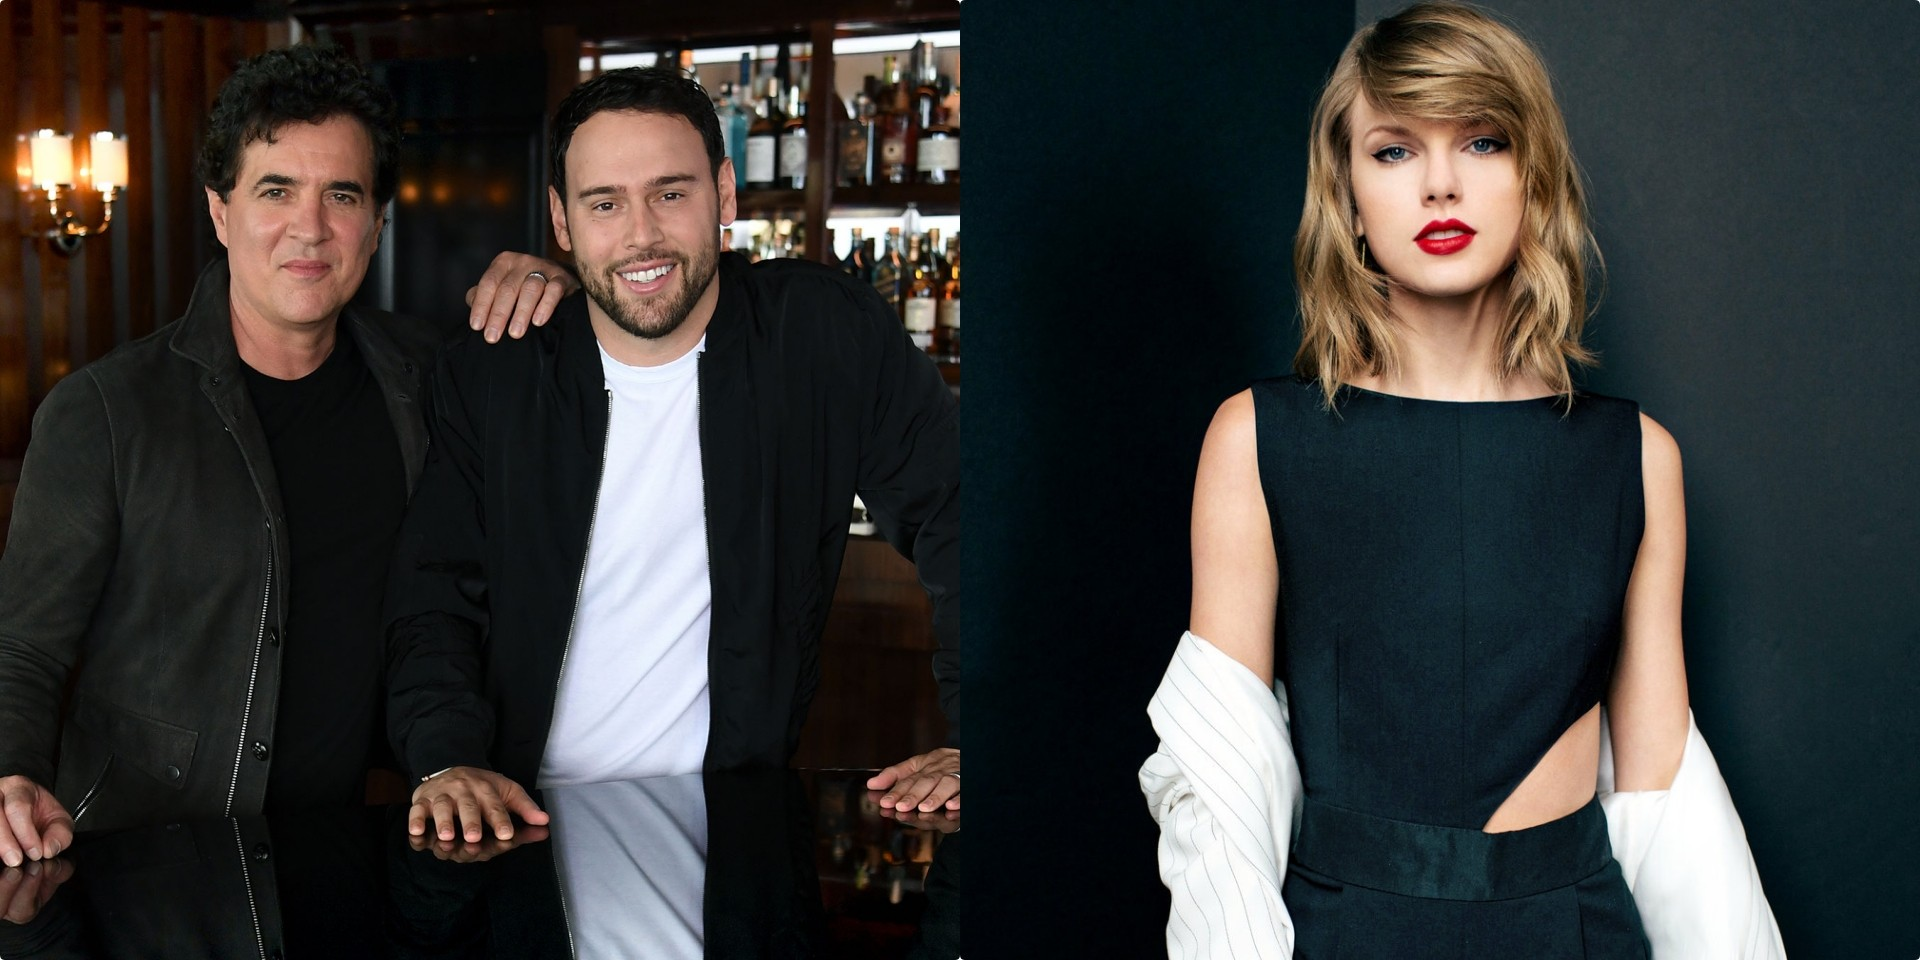 Scooter Braun's Ithaca Holdings acquires Big Machine Label Group, gets slammed by Taylor Swift